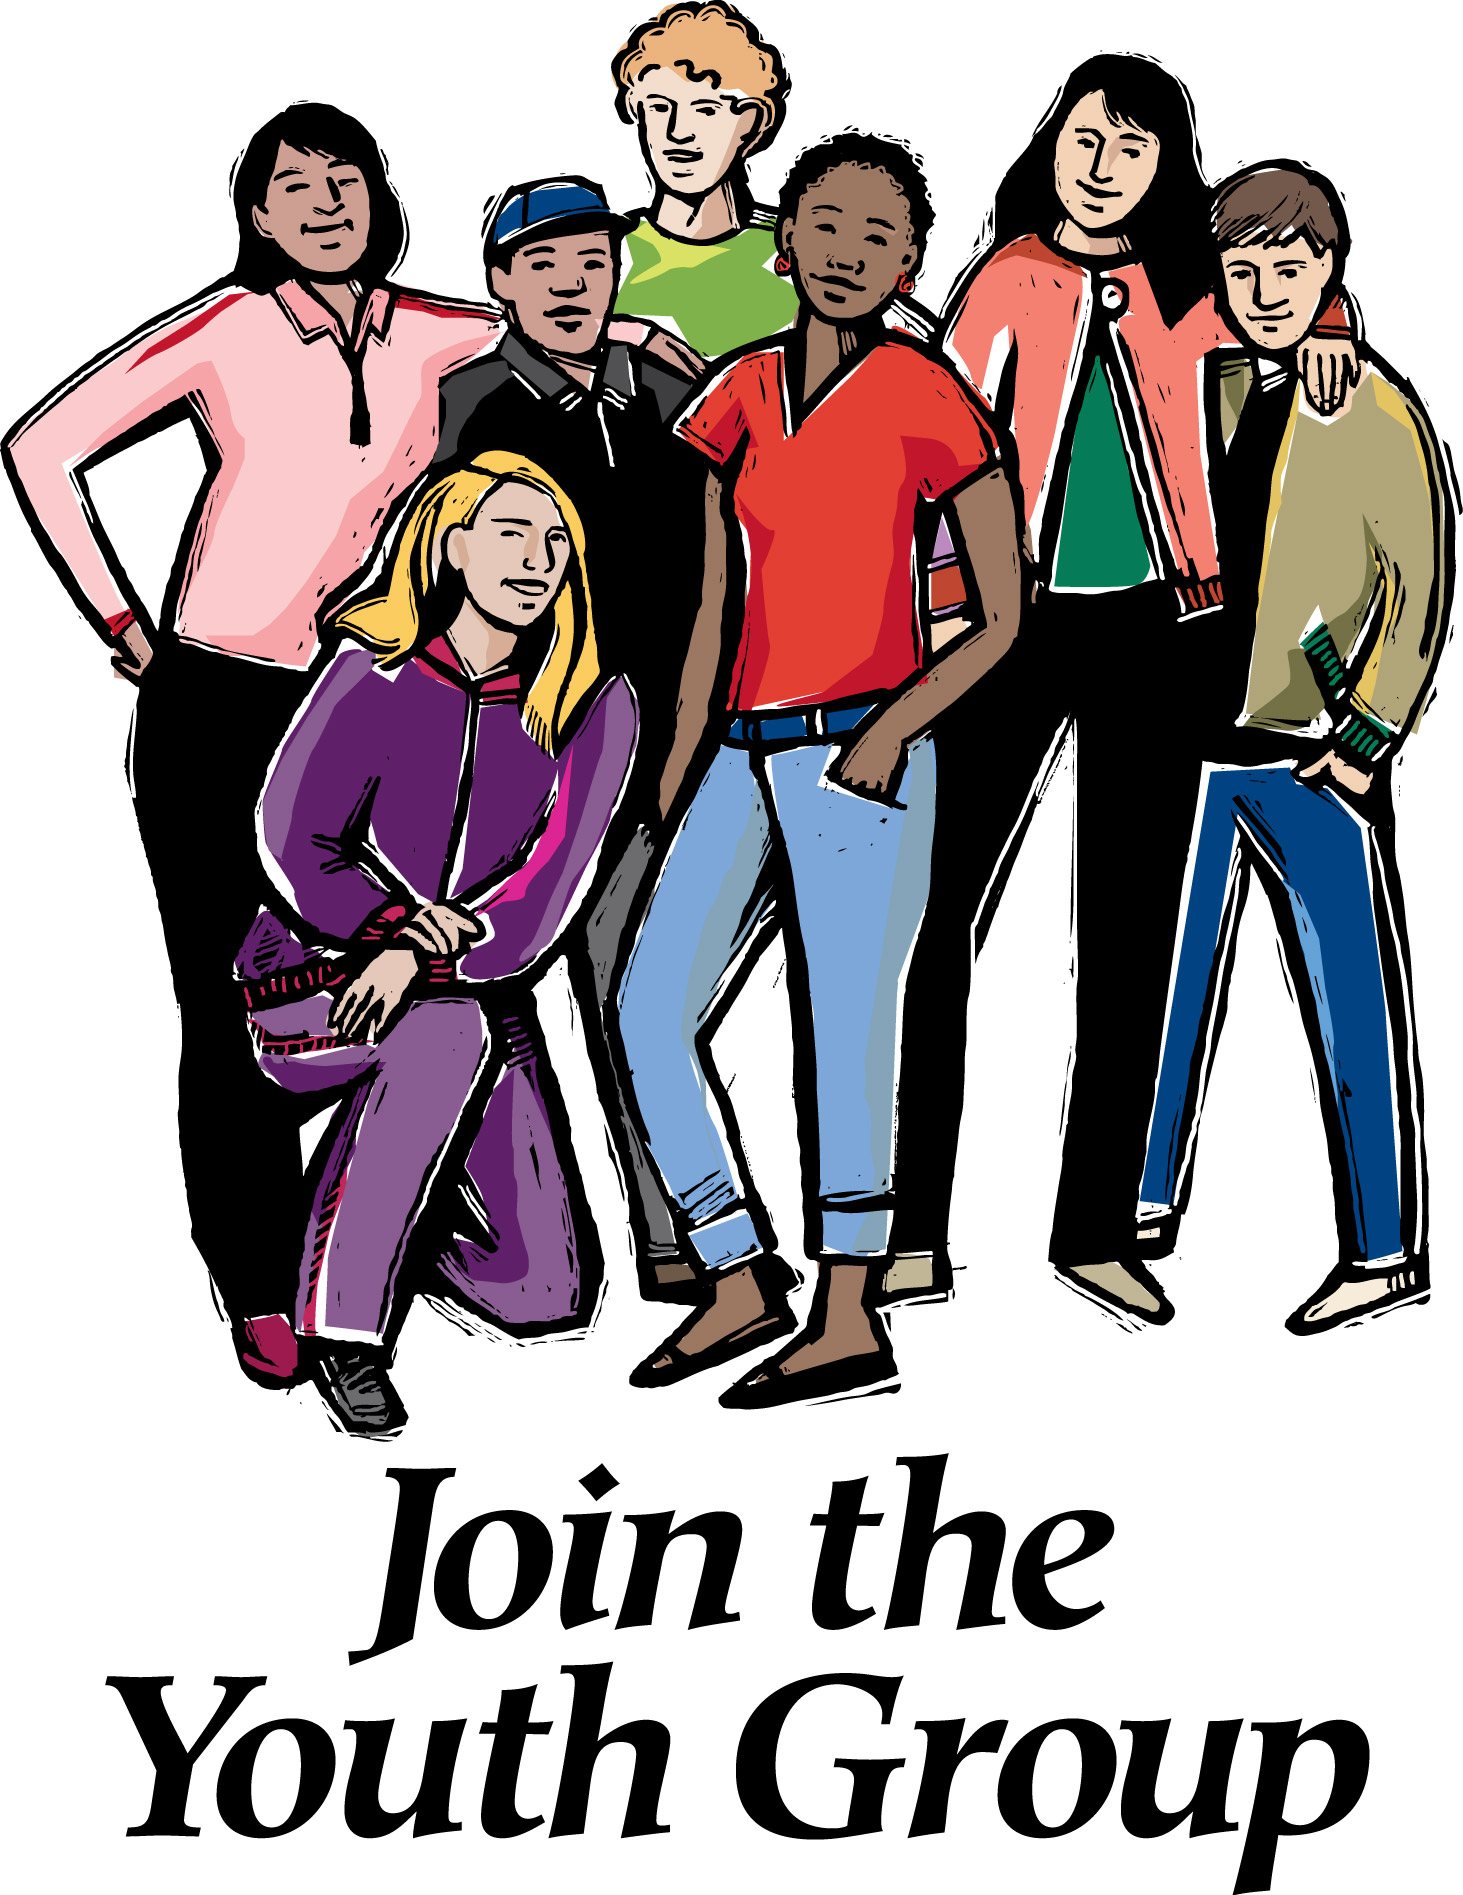 Youth Group Clip Art - Youth Group Clip Art